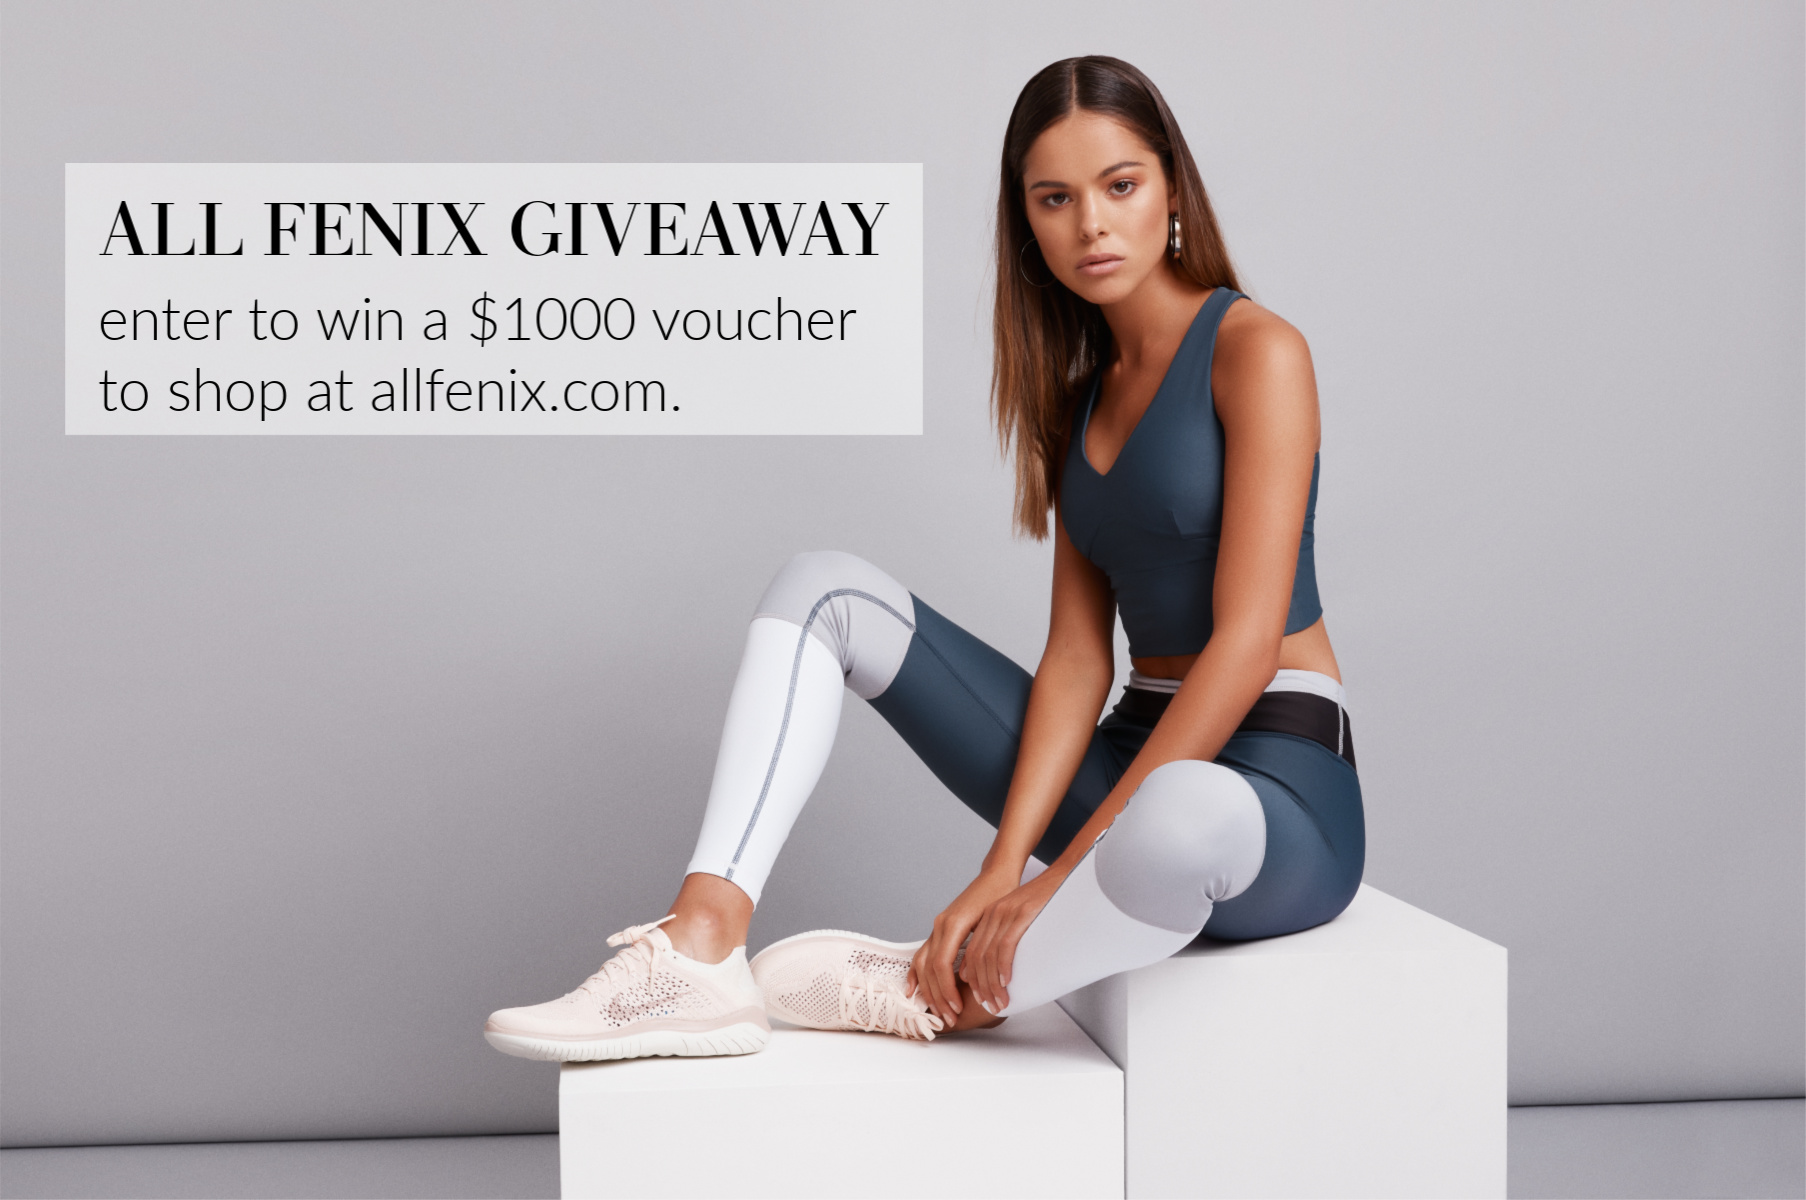 Win a $1000 Voucher to AllFenix.com! Giveaway Image